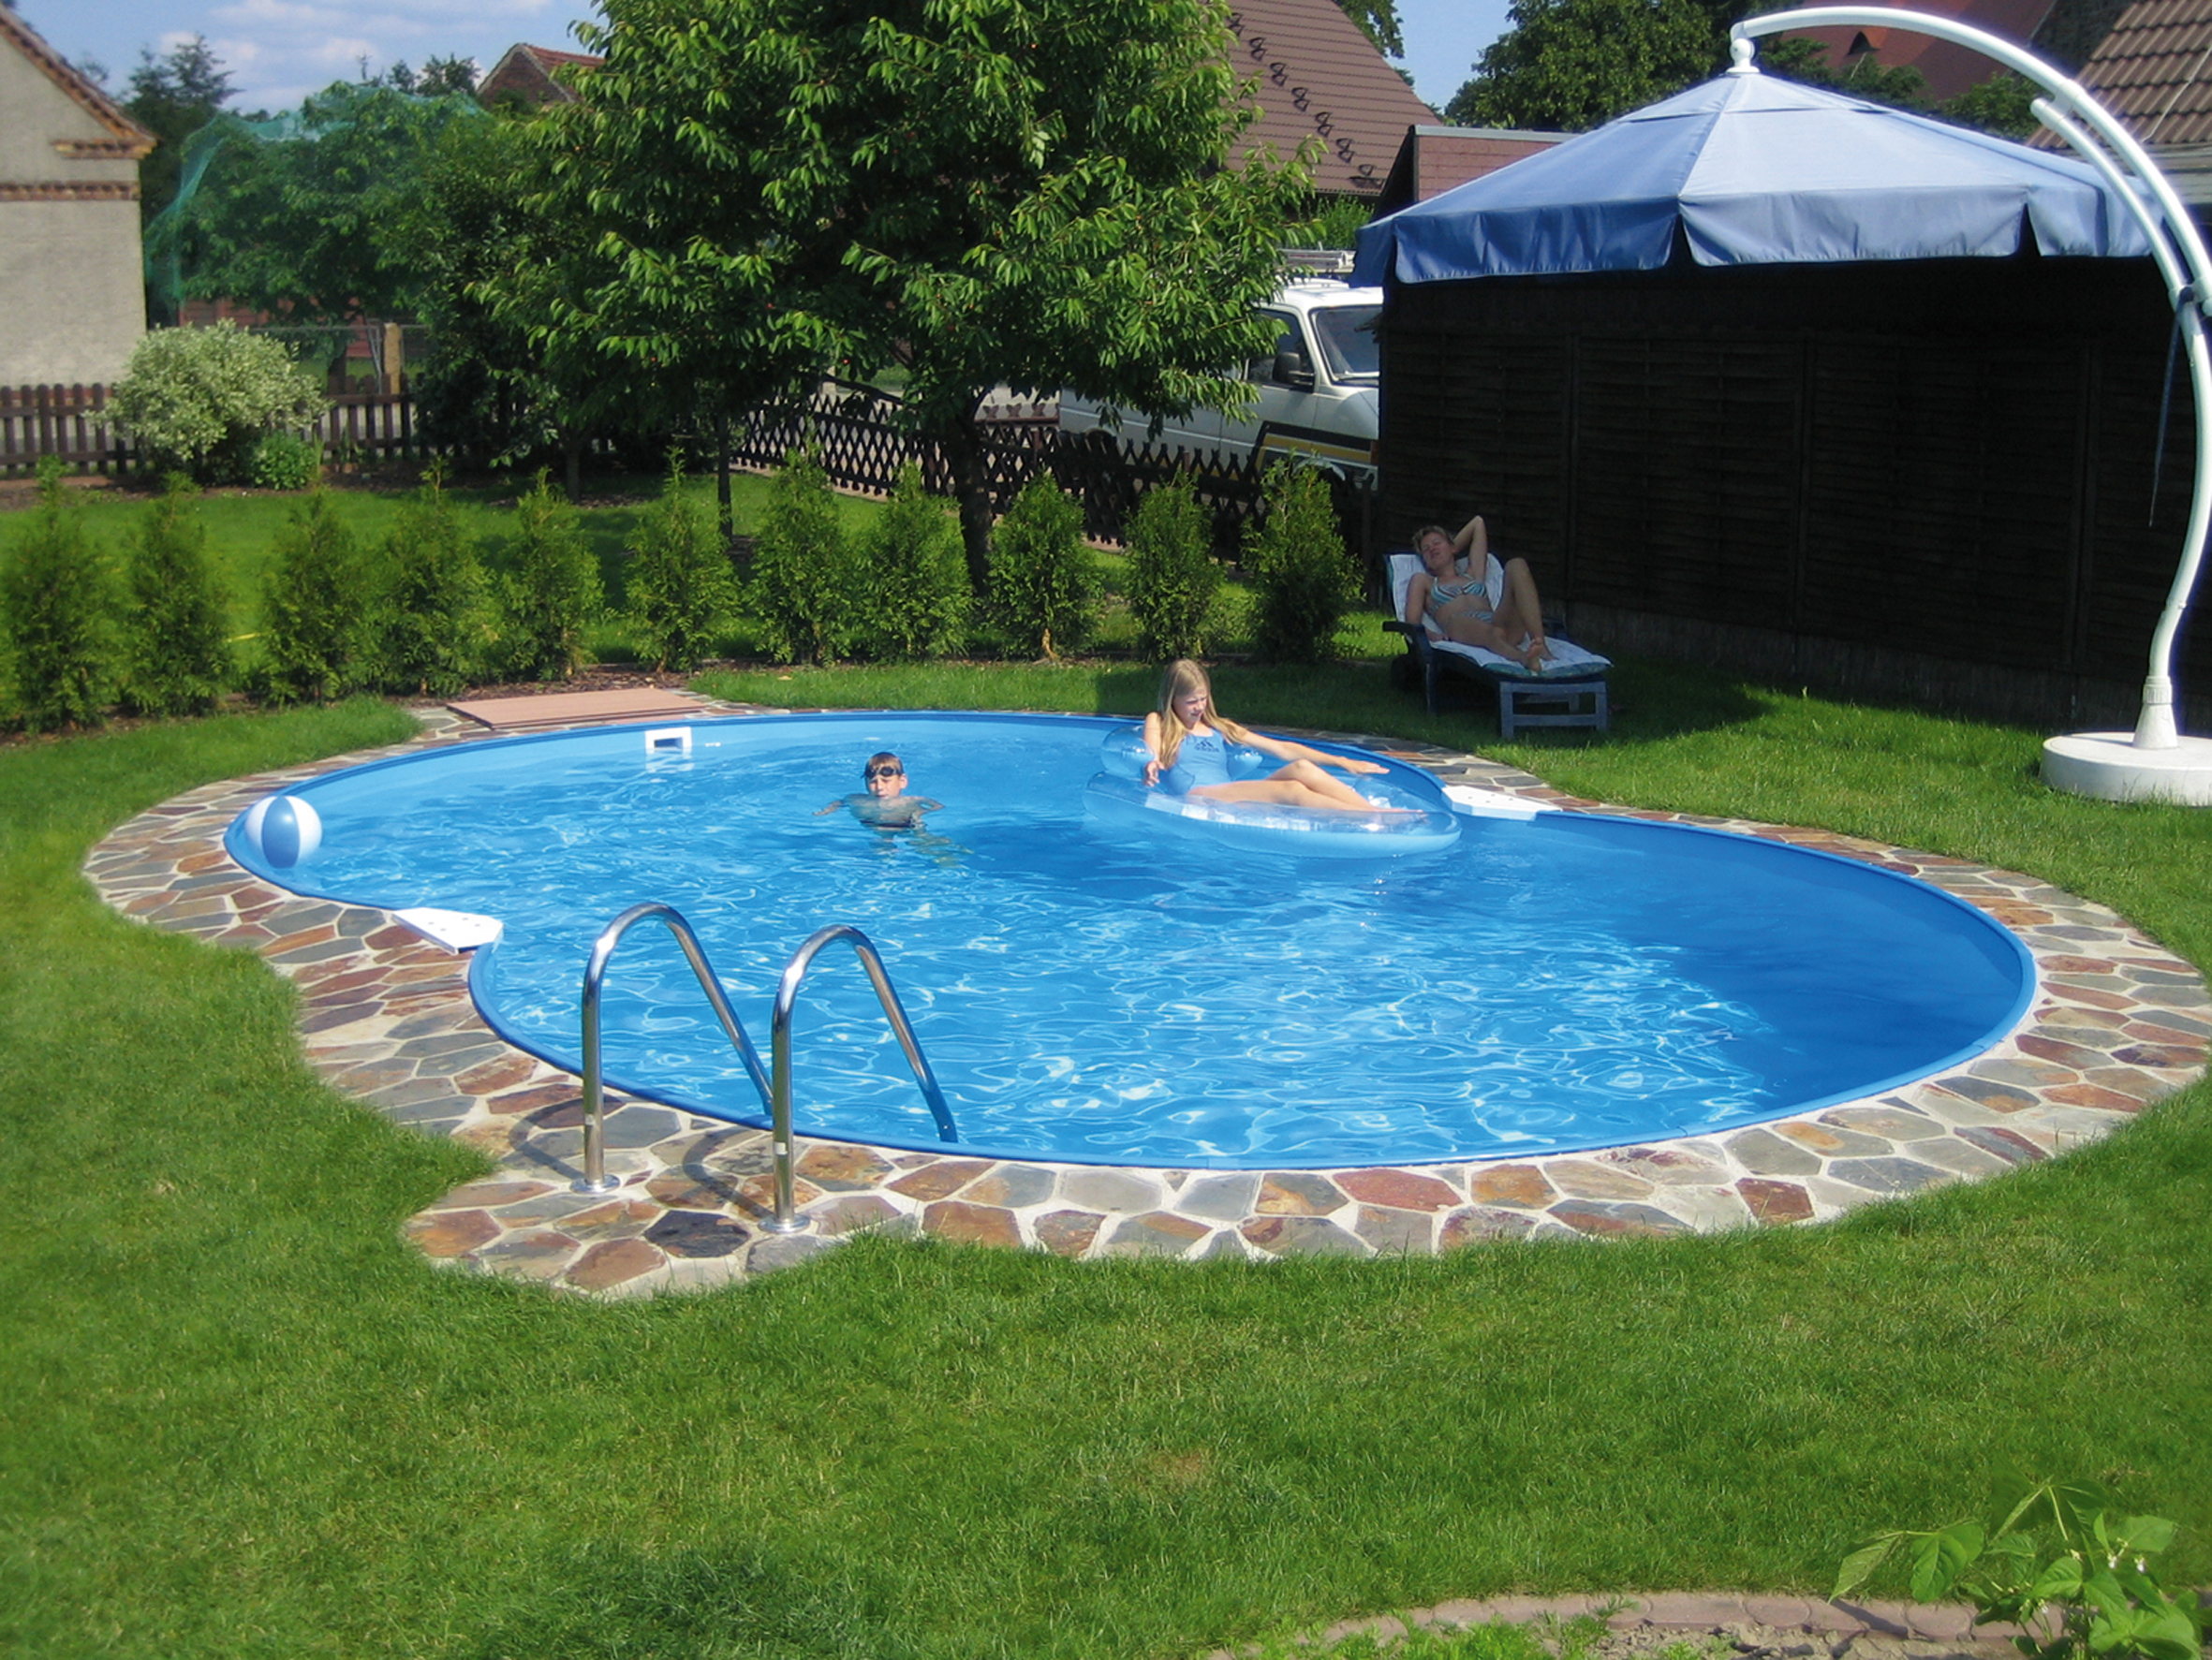 Pool layout plan best layout room for Swimming pool ideas for backyard